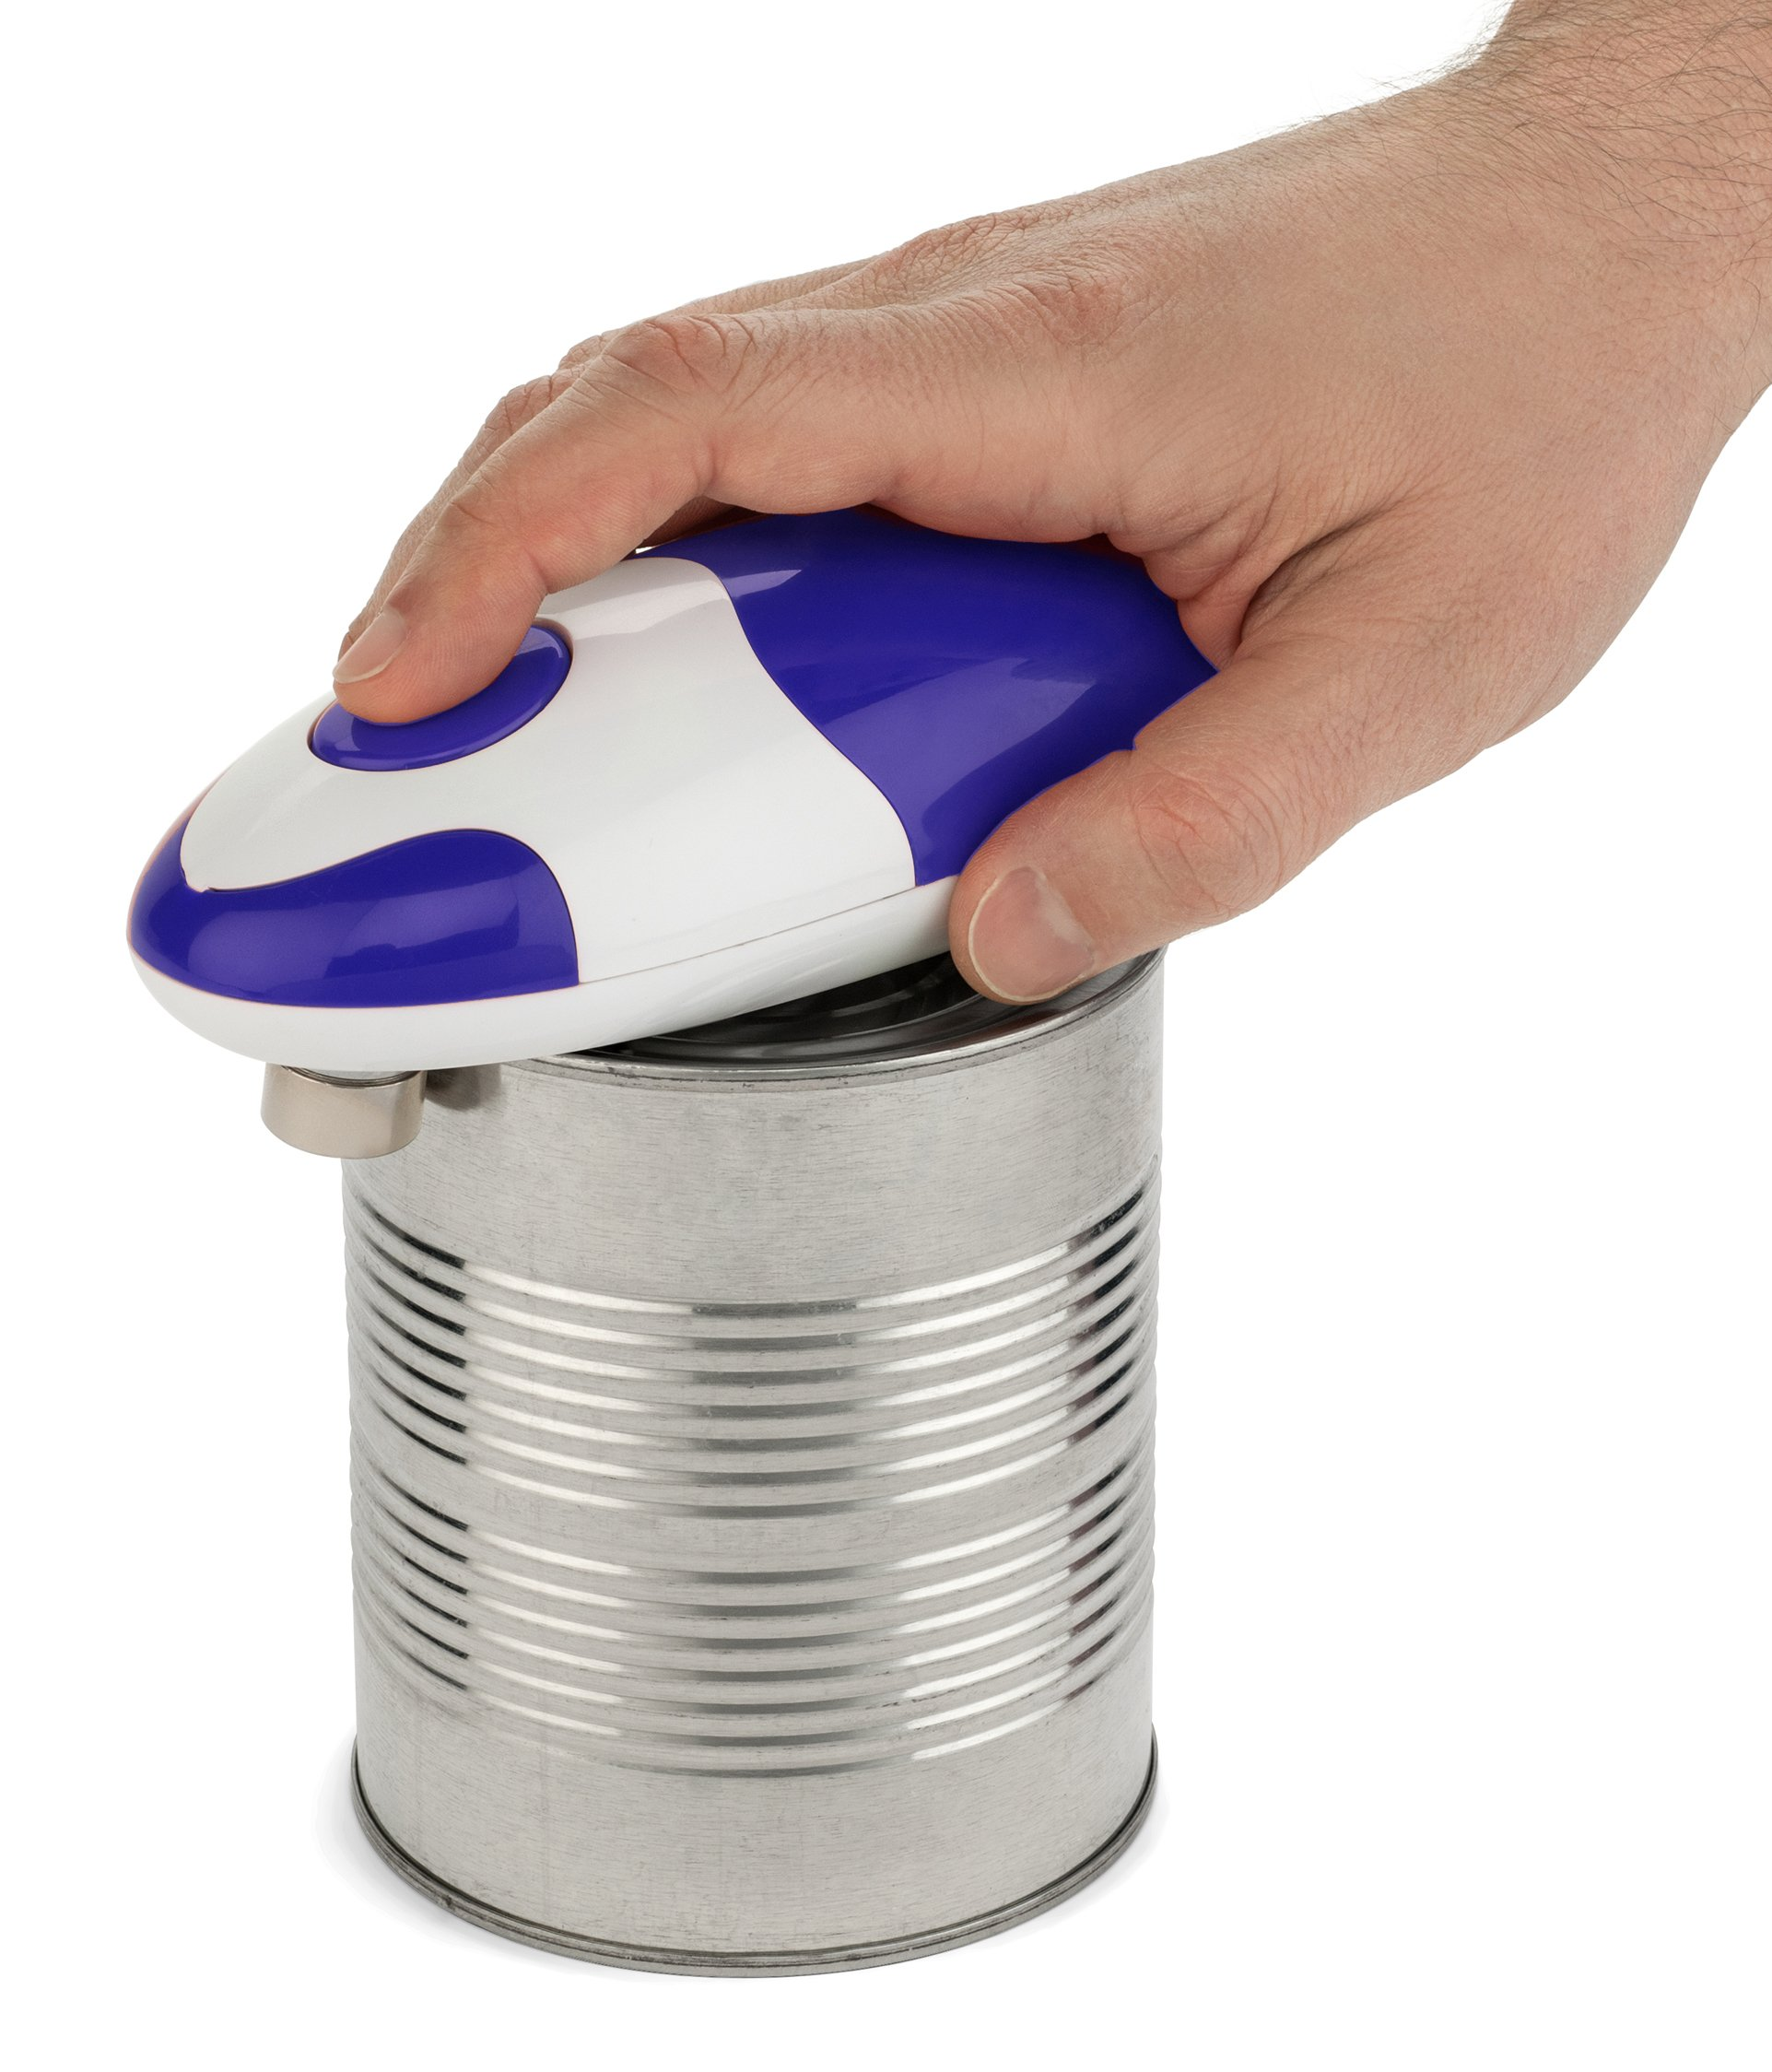 Bartelli Soft Edge Automatic Electric Can Opener - Blue by Bartelli (Image #4)